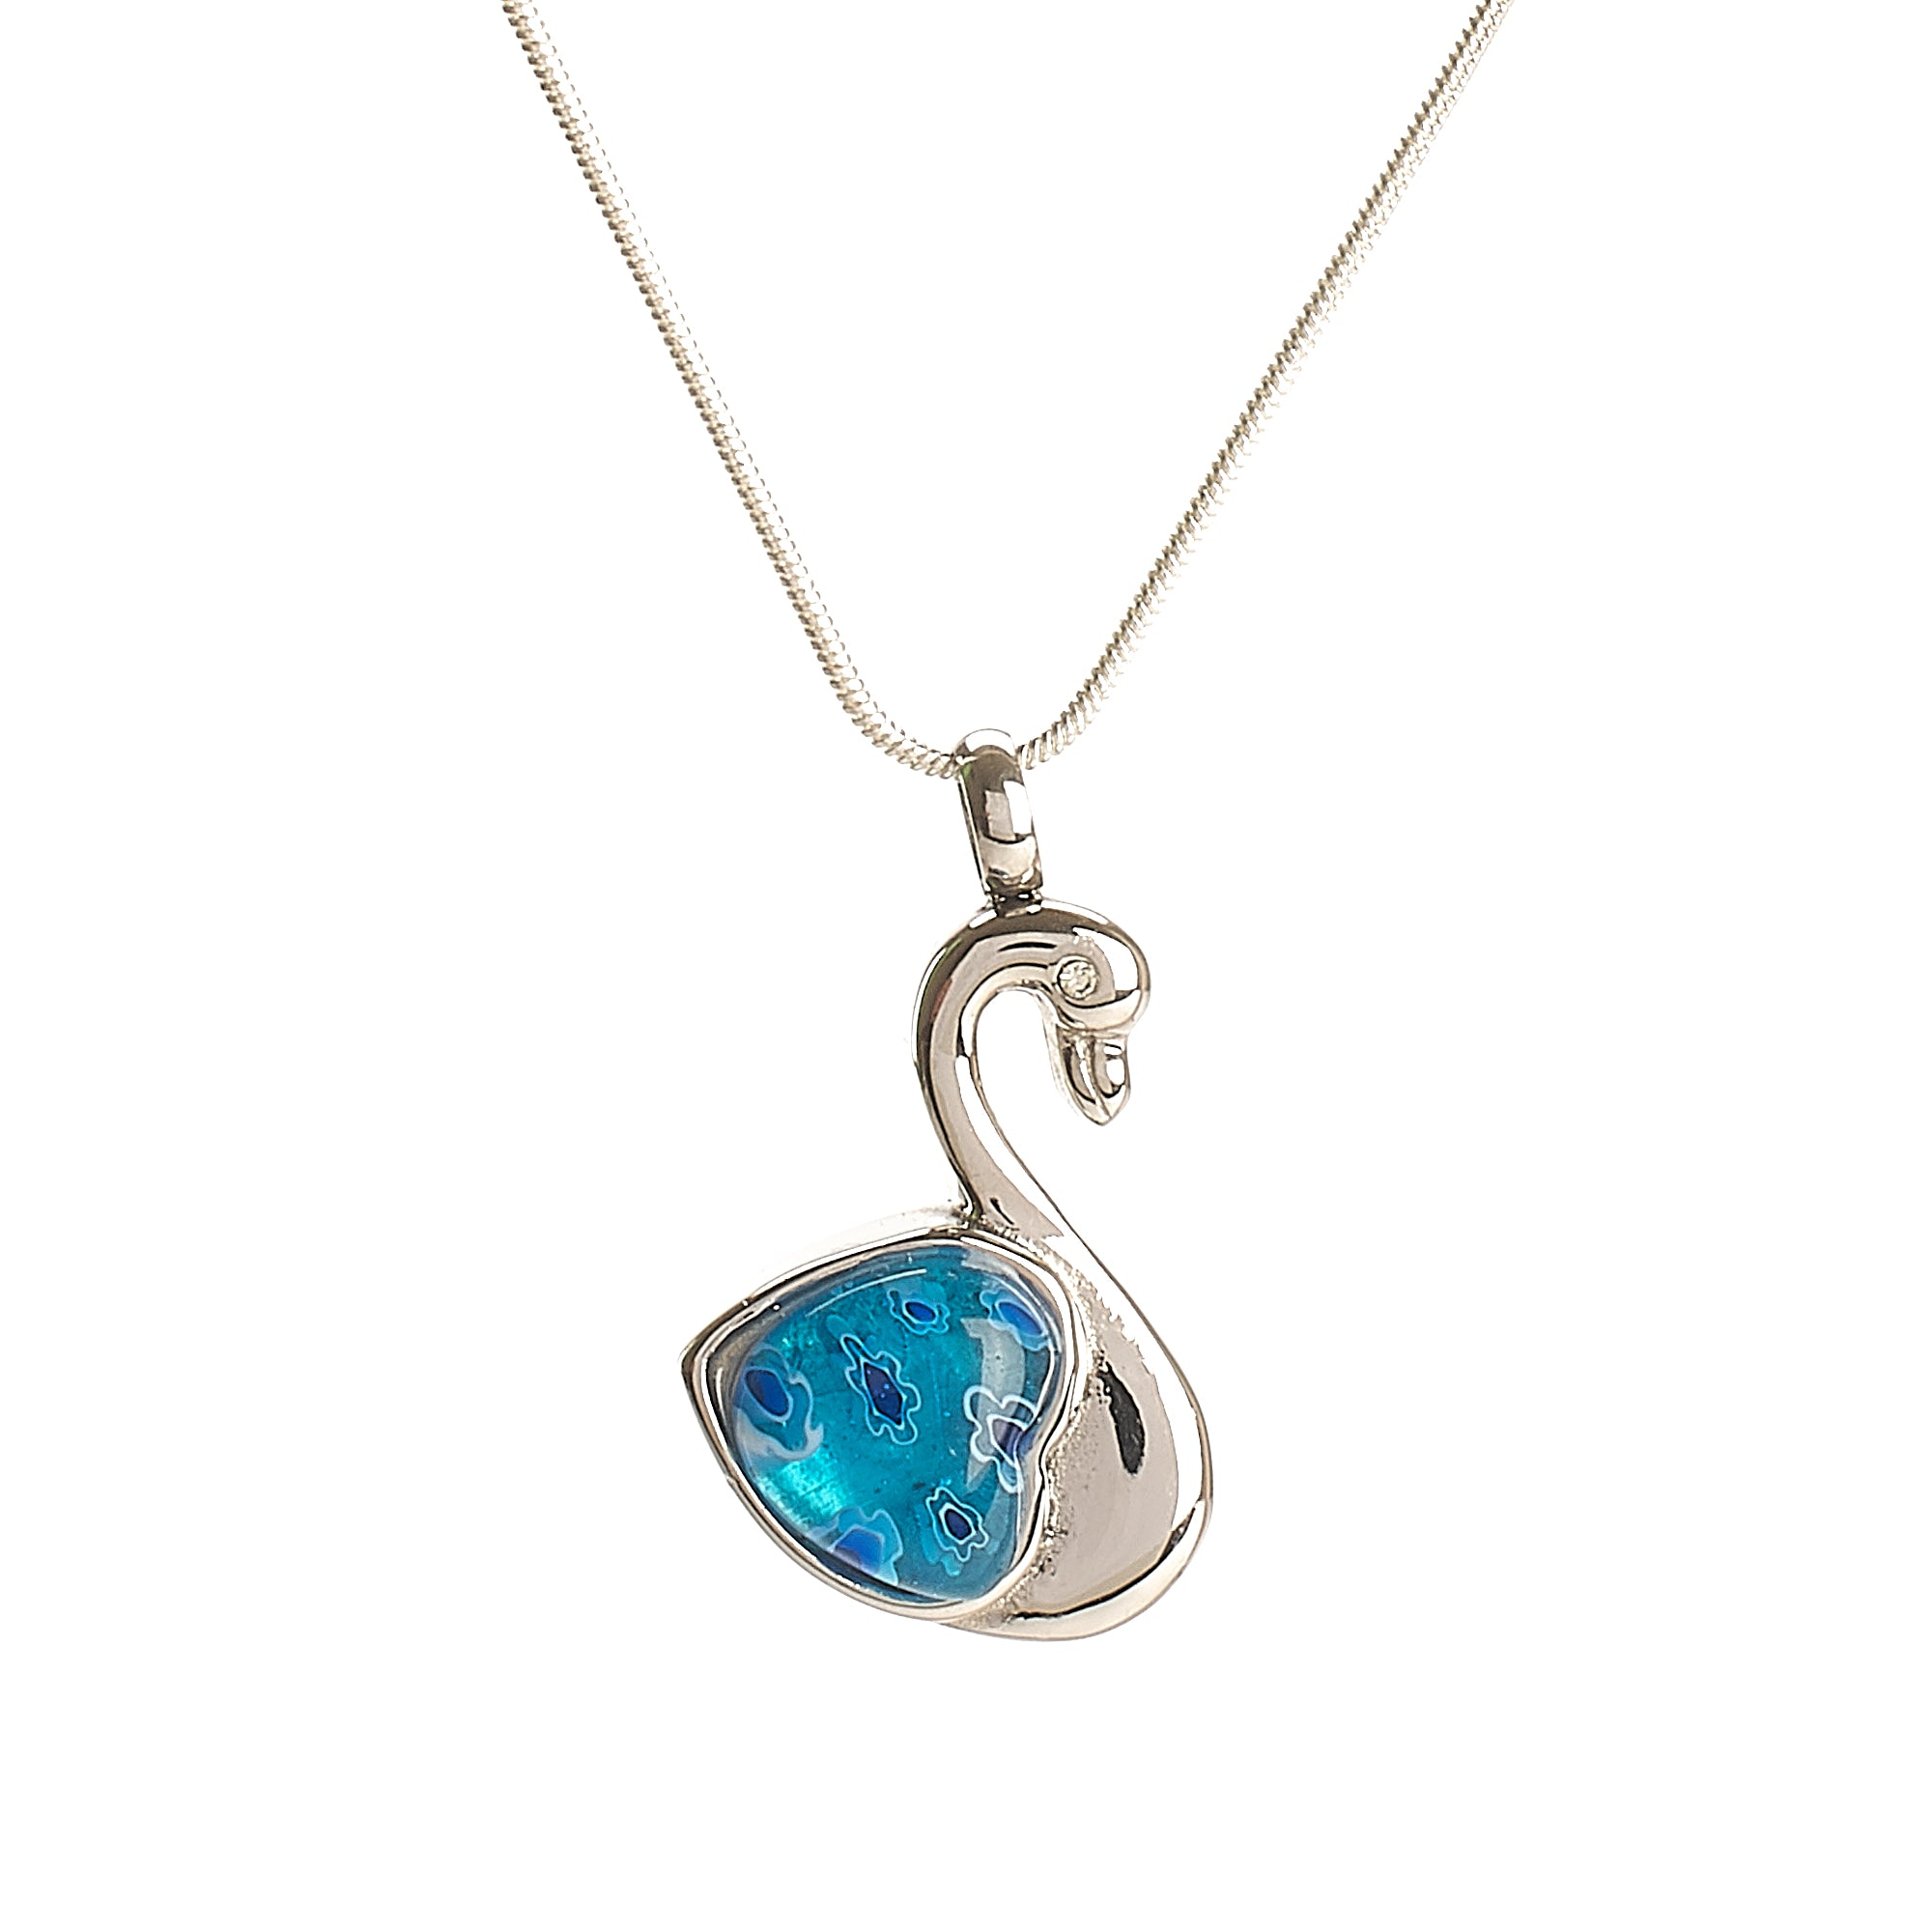 Cremation Pendant - Murano Silver Swan with Blue Heart feature